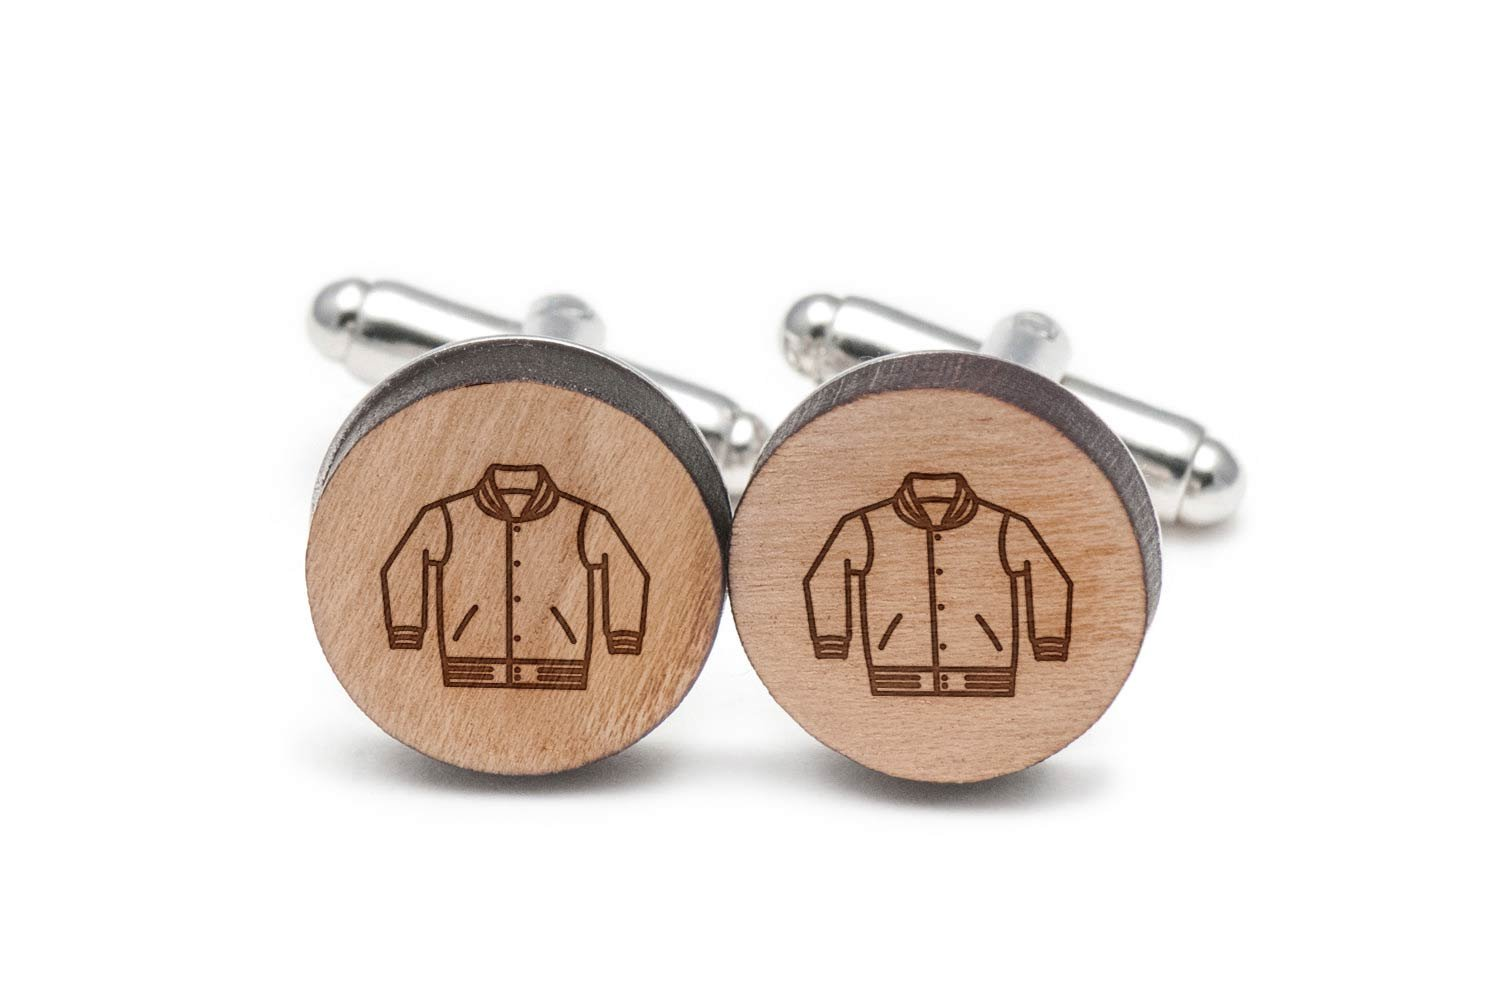 Wooden Accessories Company Varsity Jacket Cufflinks, Wood Cufflinks Hand Made in The USA